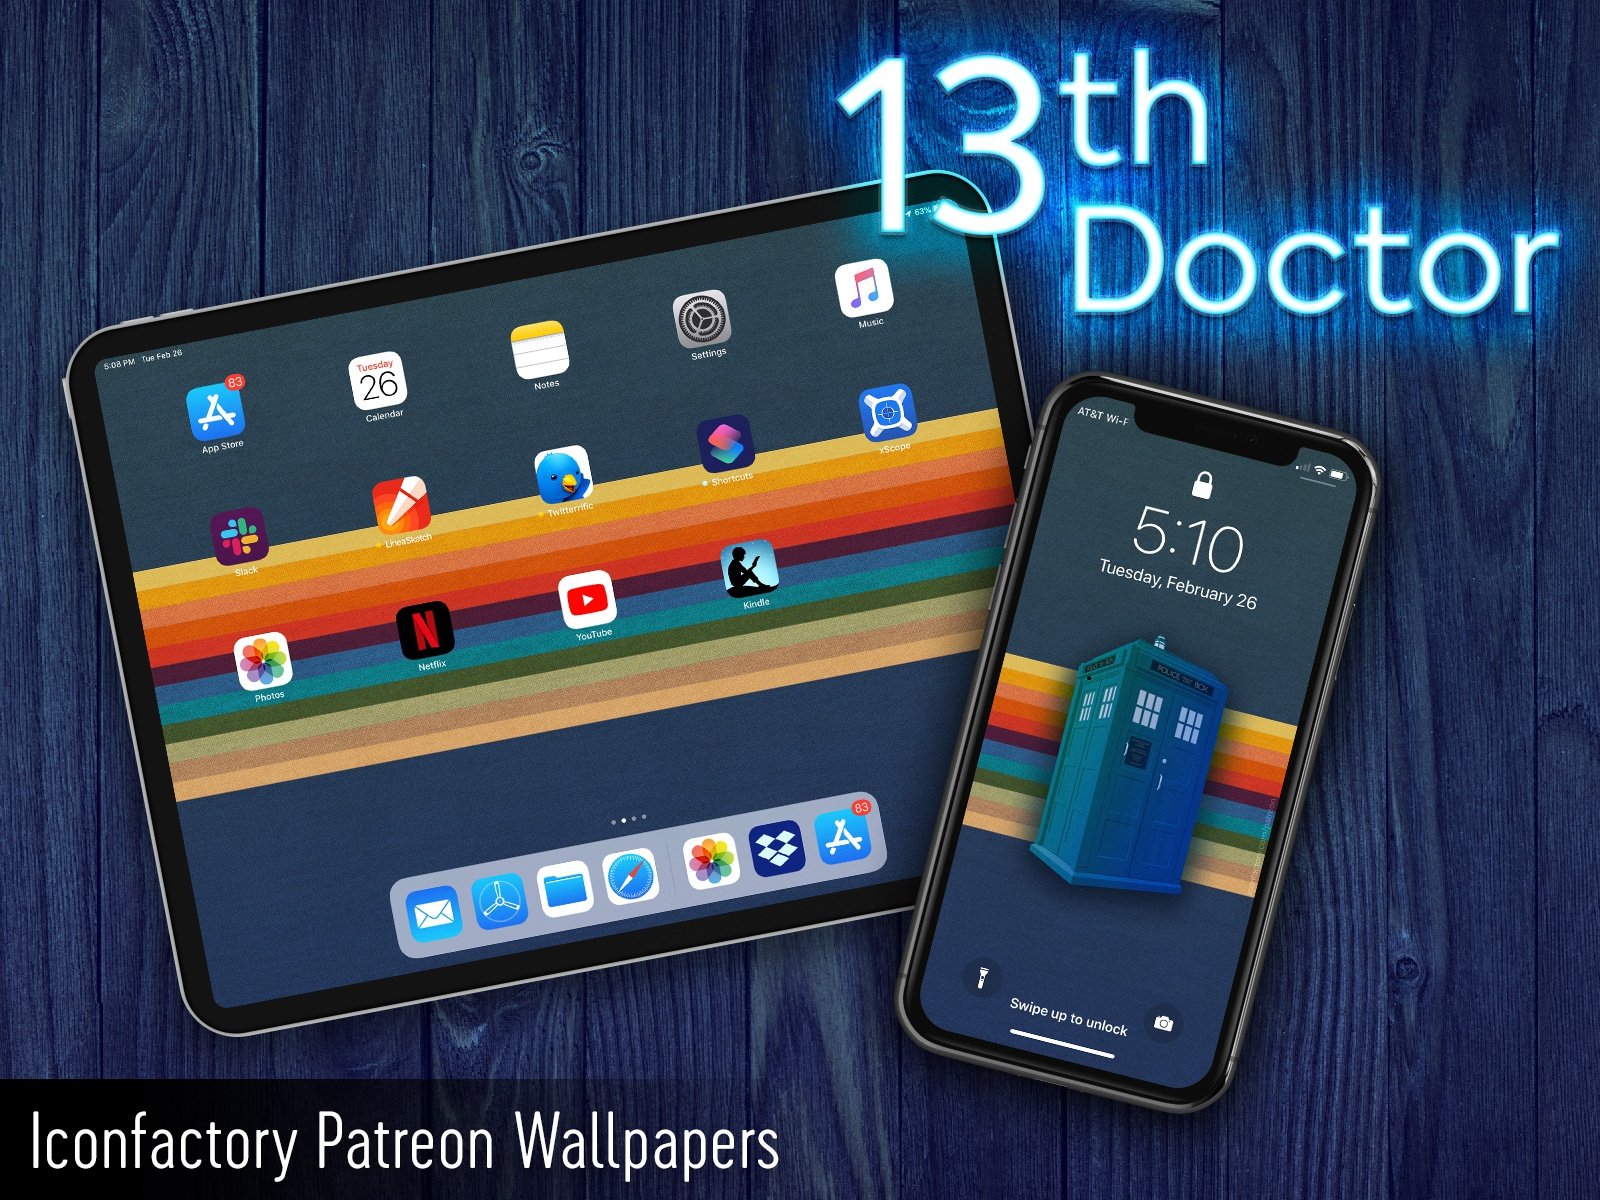 13th Doctor Wallpaper By Iconfactory On Dribbble